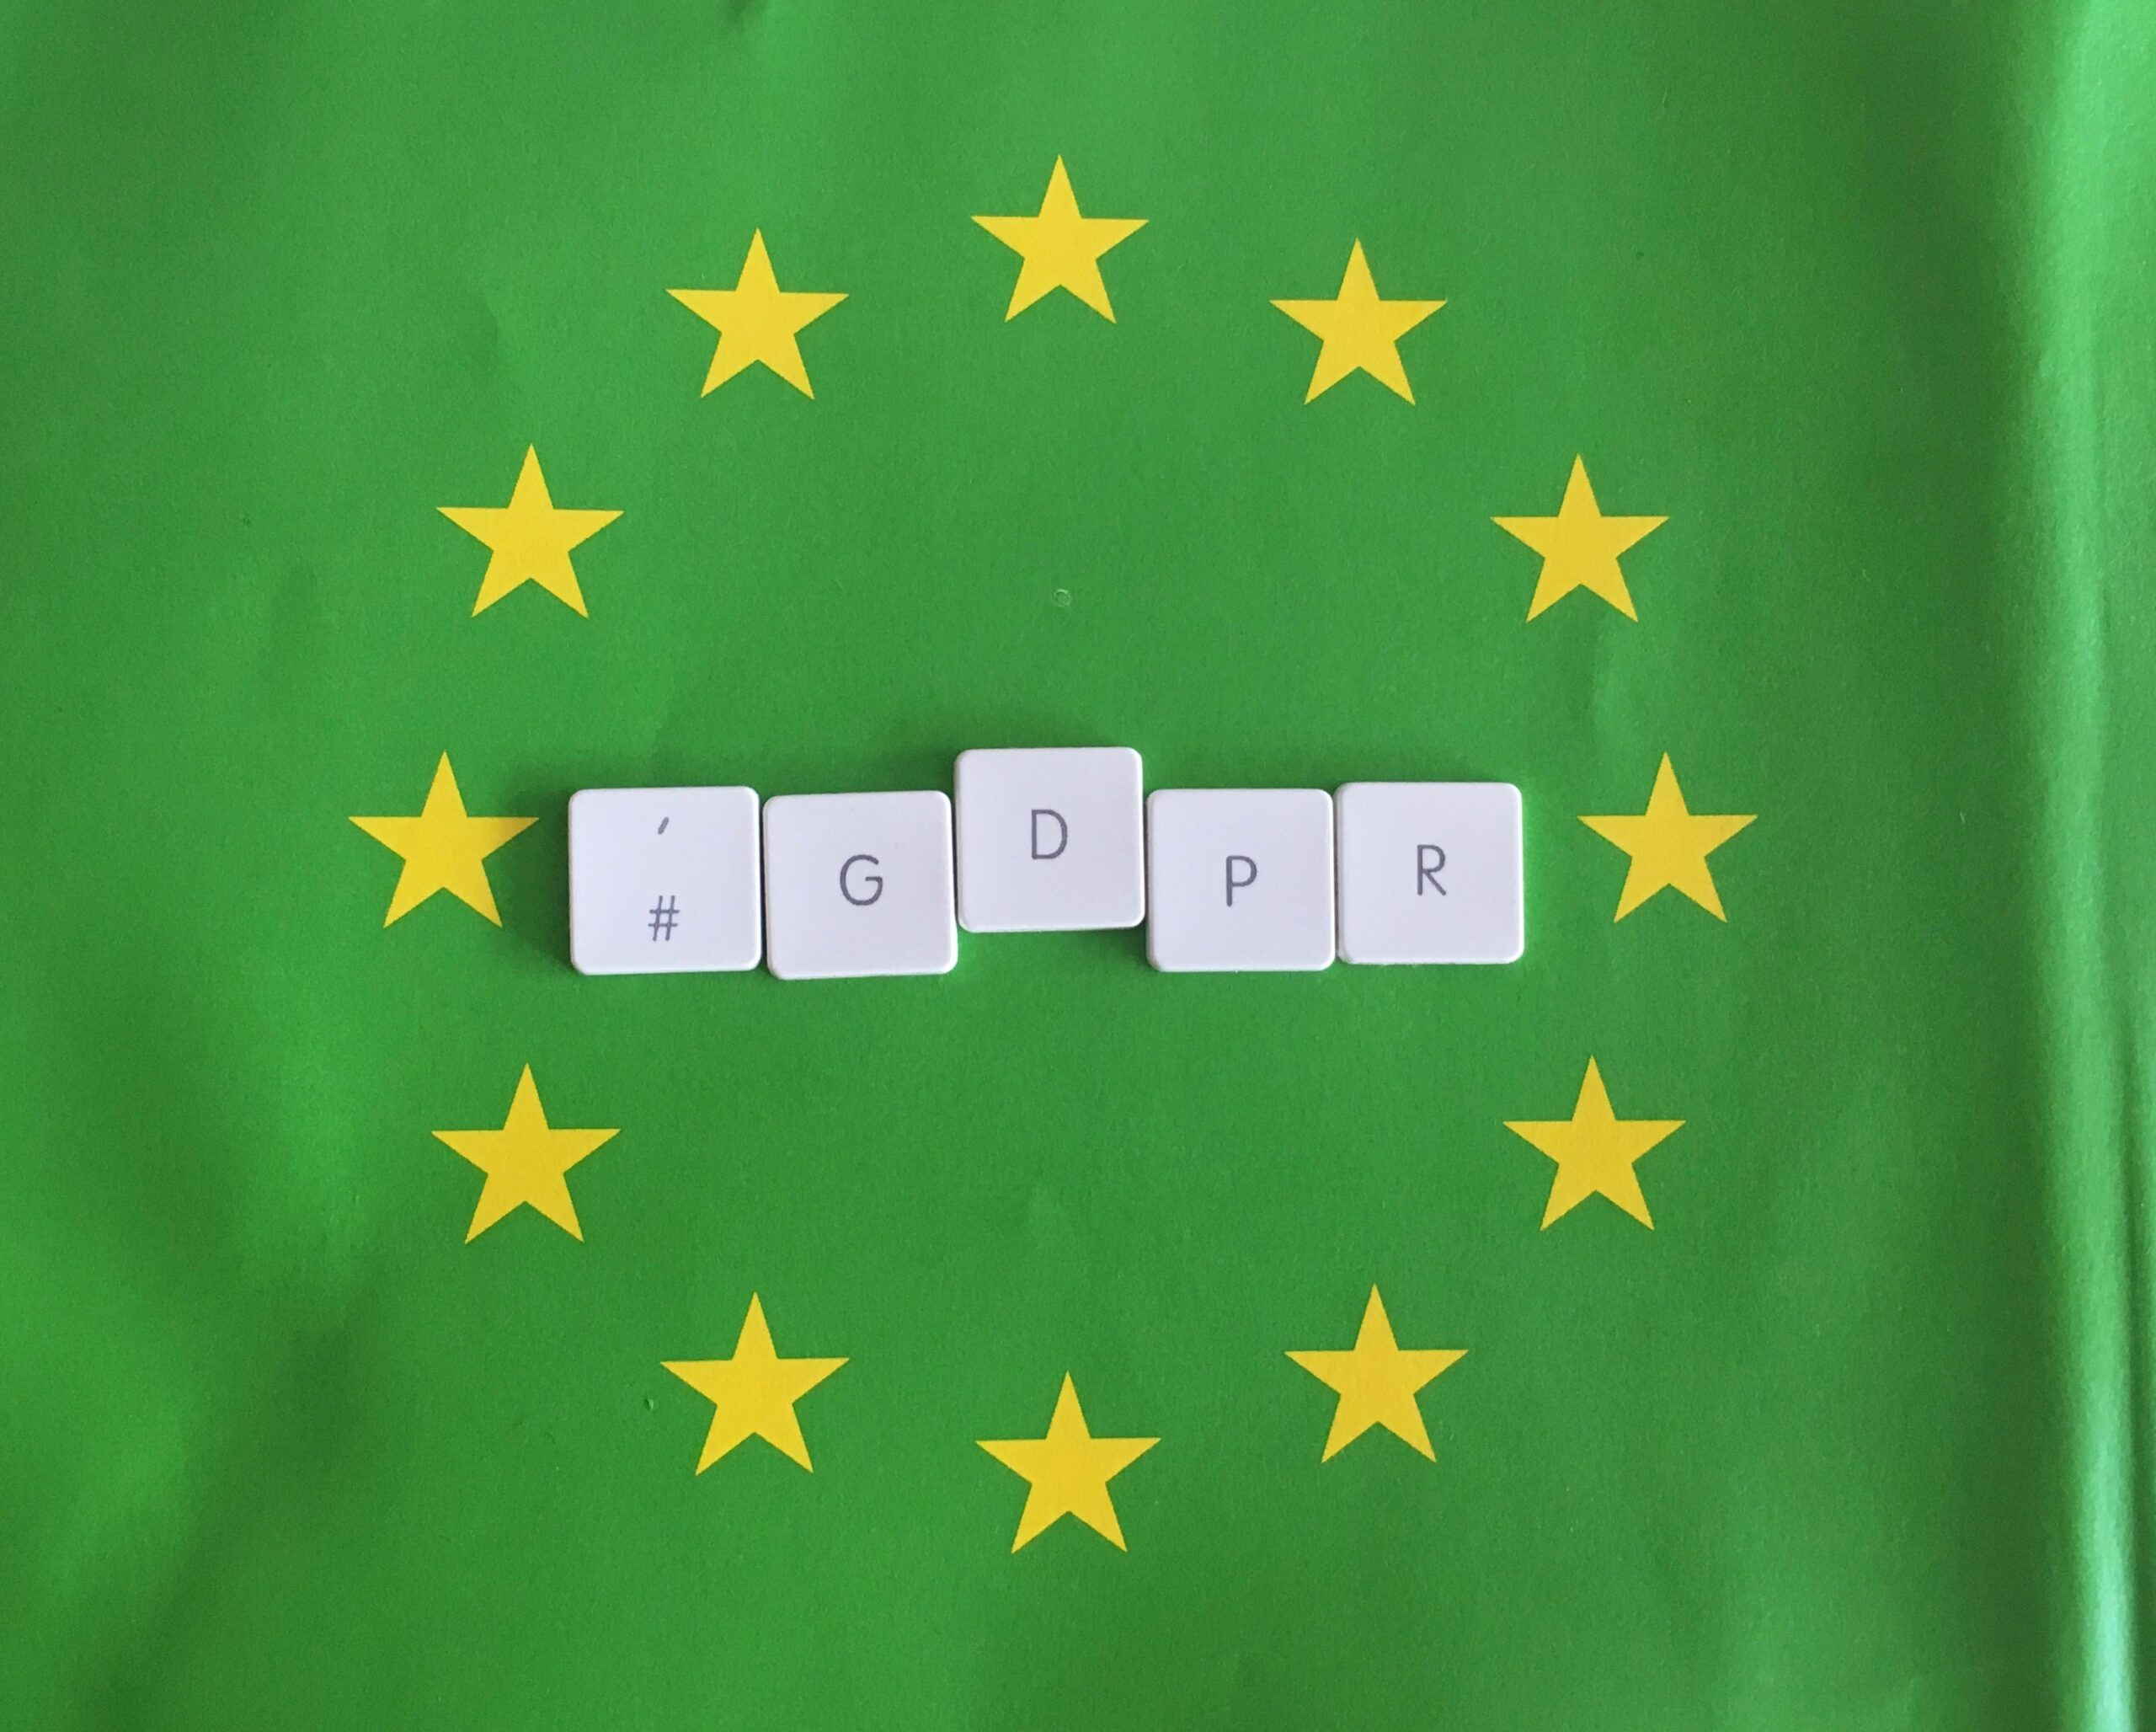 Green European Union flag with yellow stars and GDPR spelt out in keyboard letters